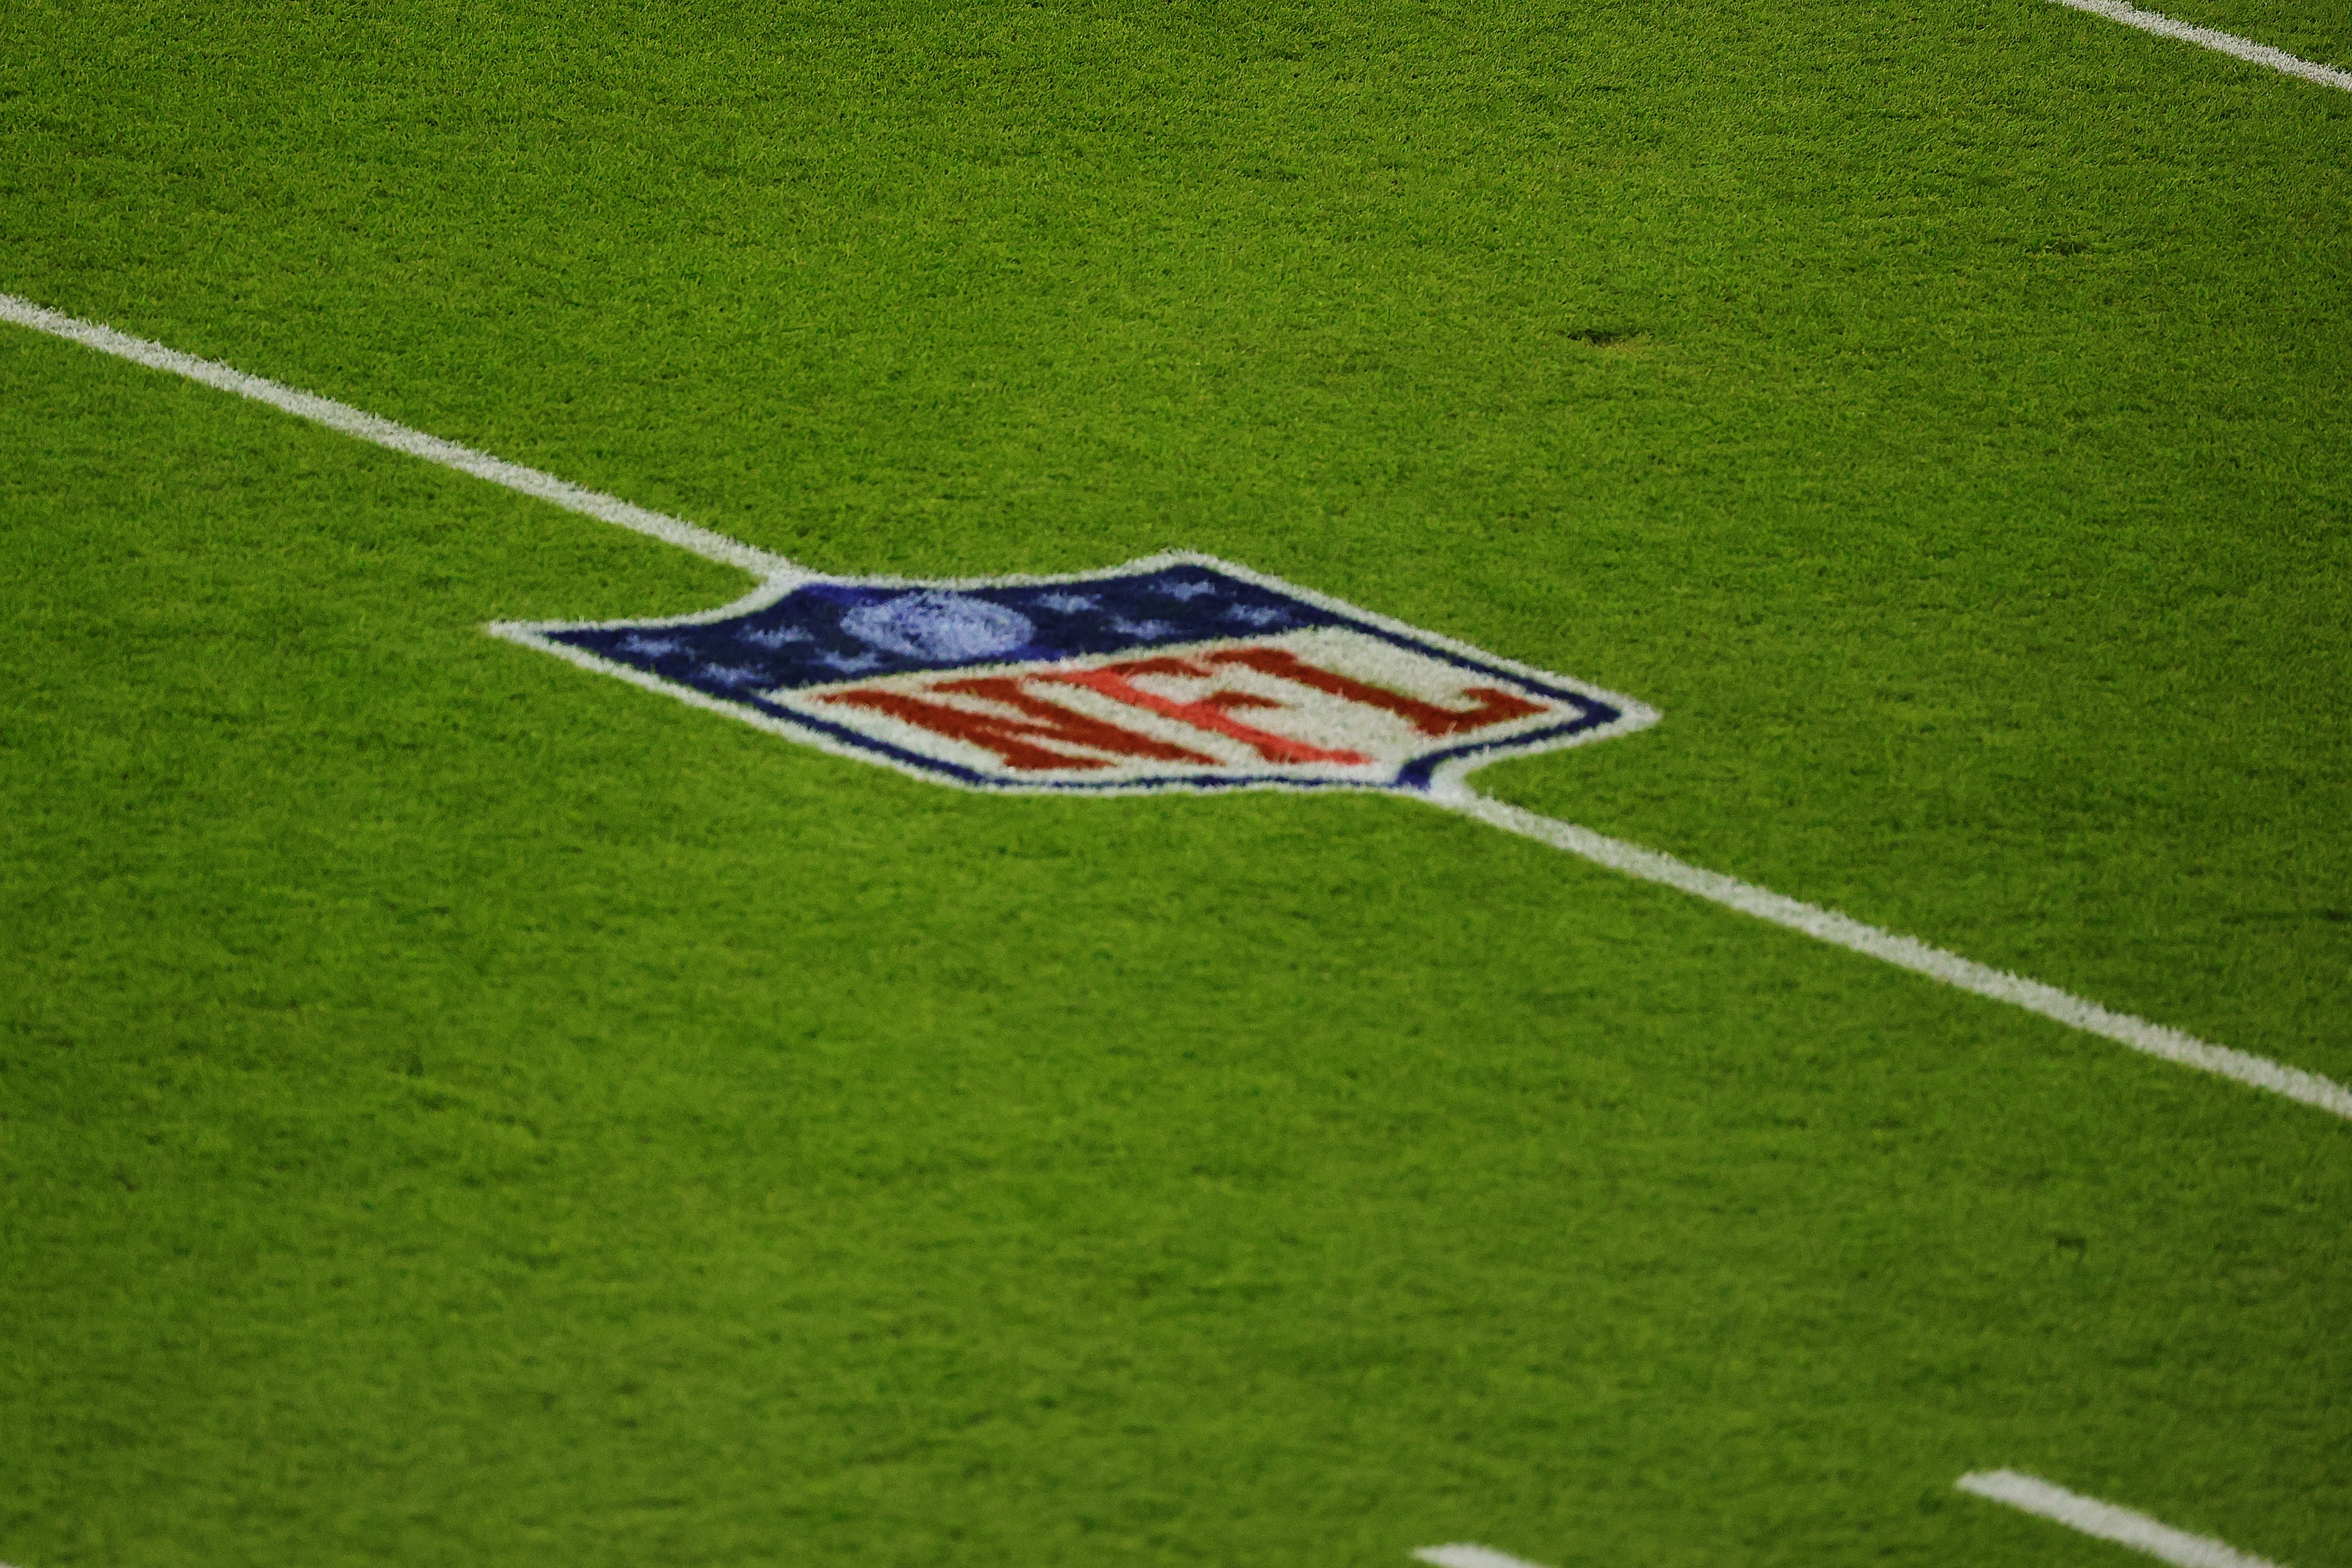 The NFL and NFLPA are jointly offering up to $1 million in grants to researchers who can help the league move forward with alternatives to opioid-based pain management.